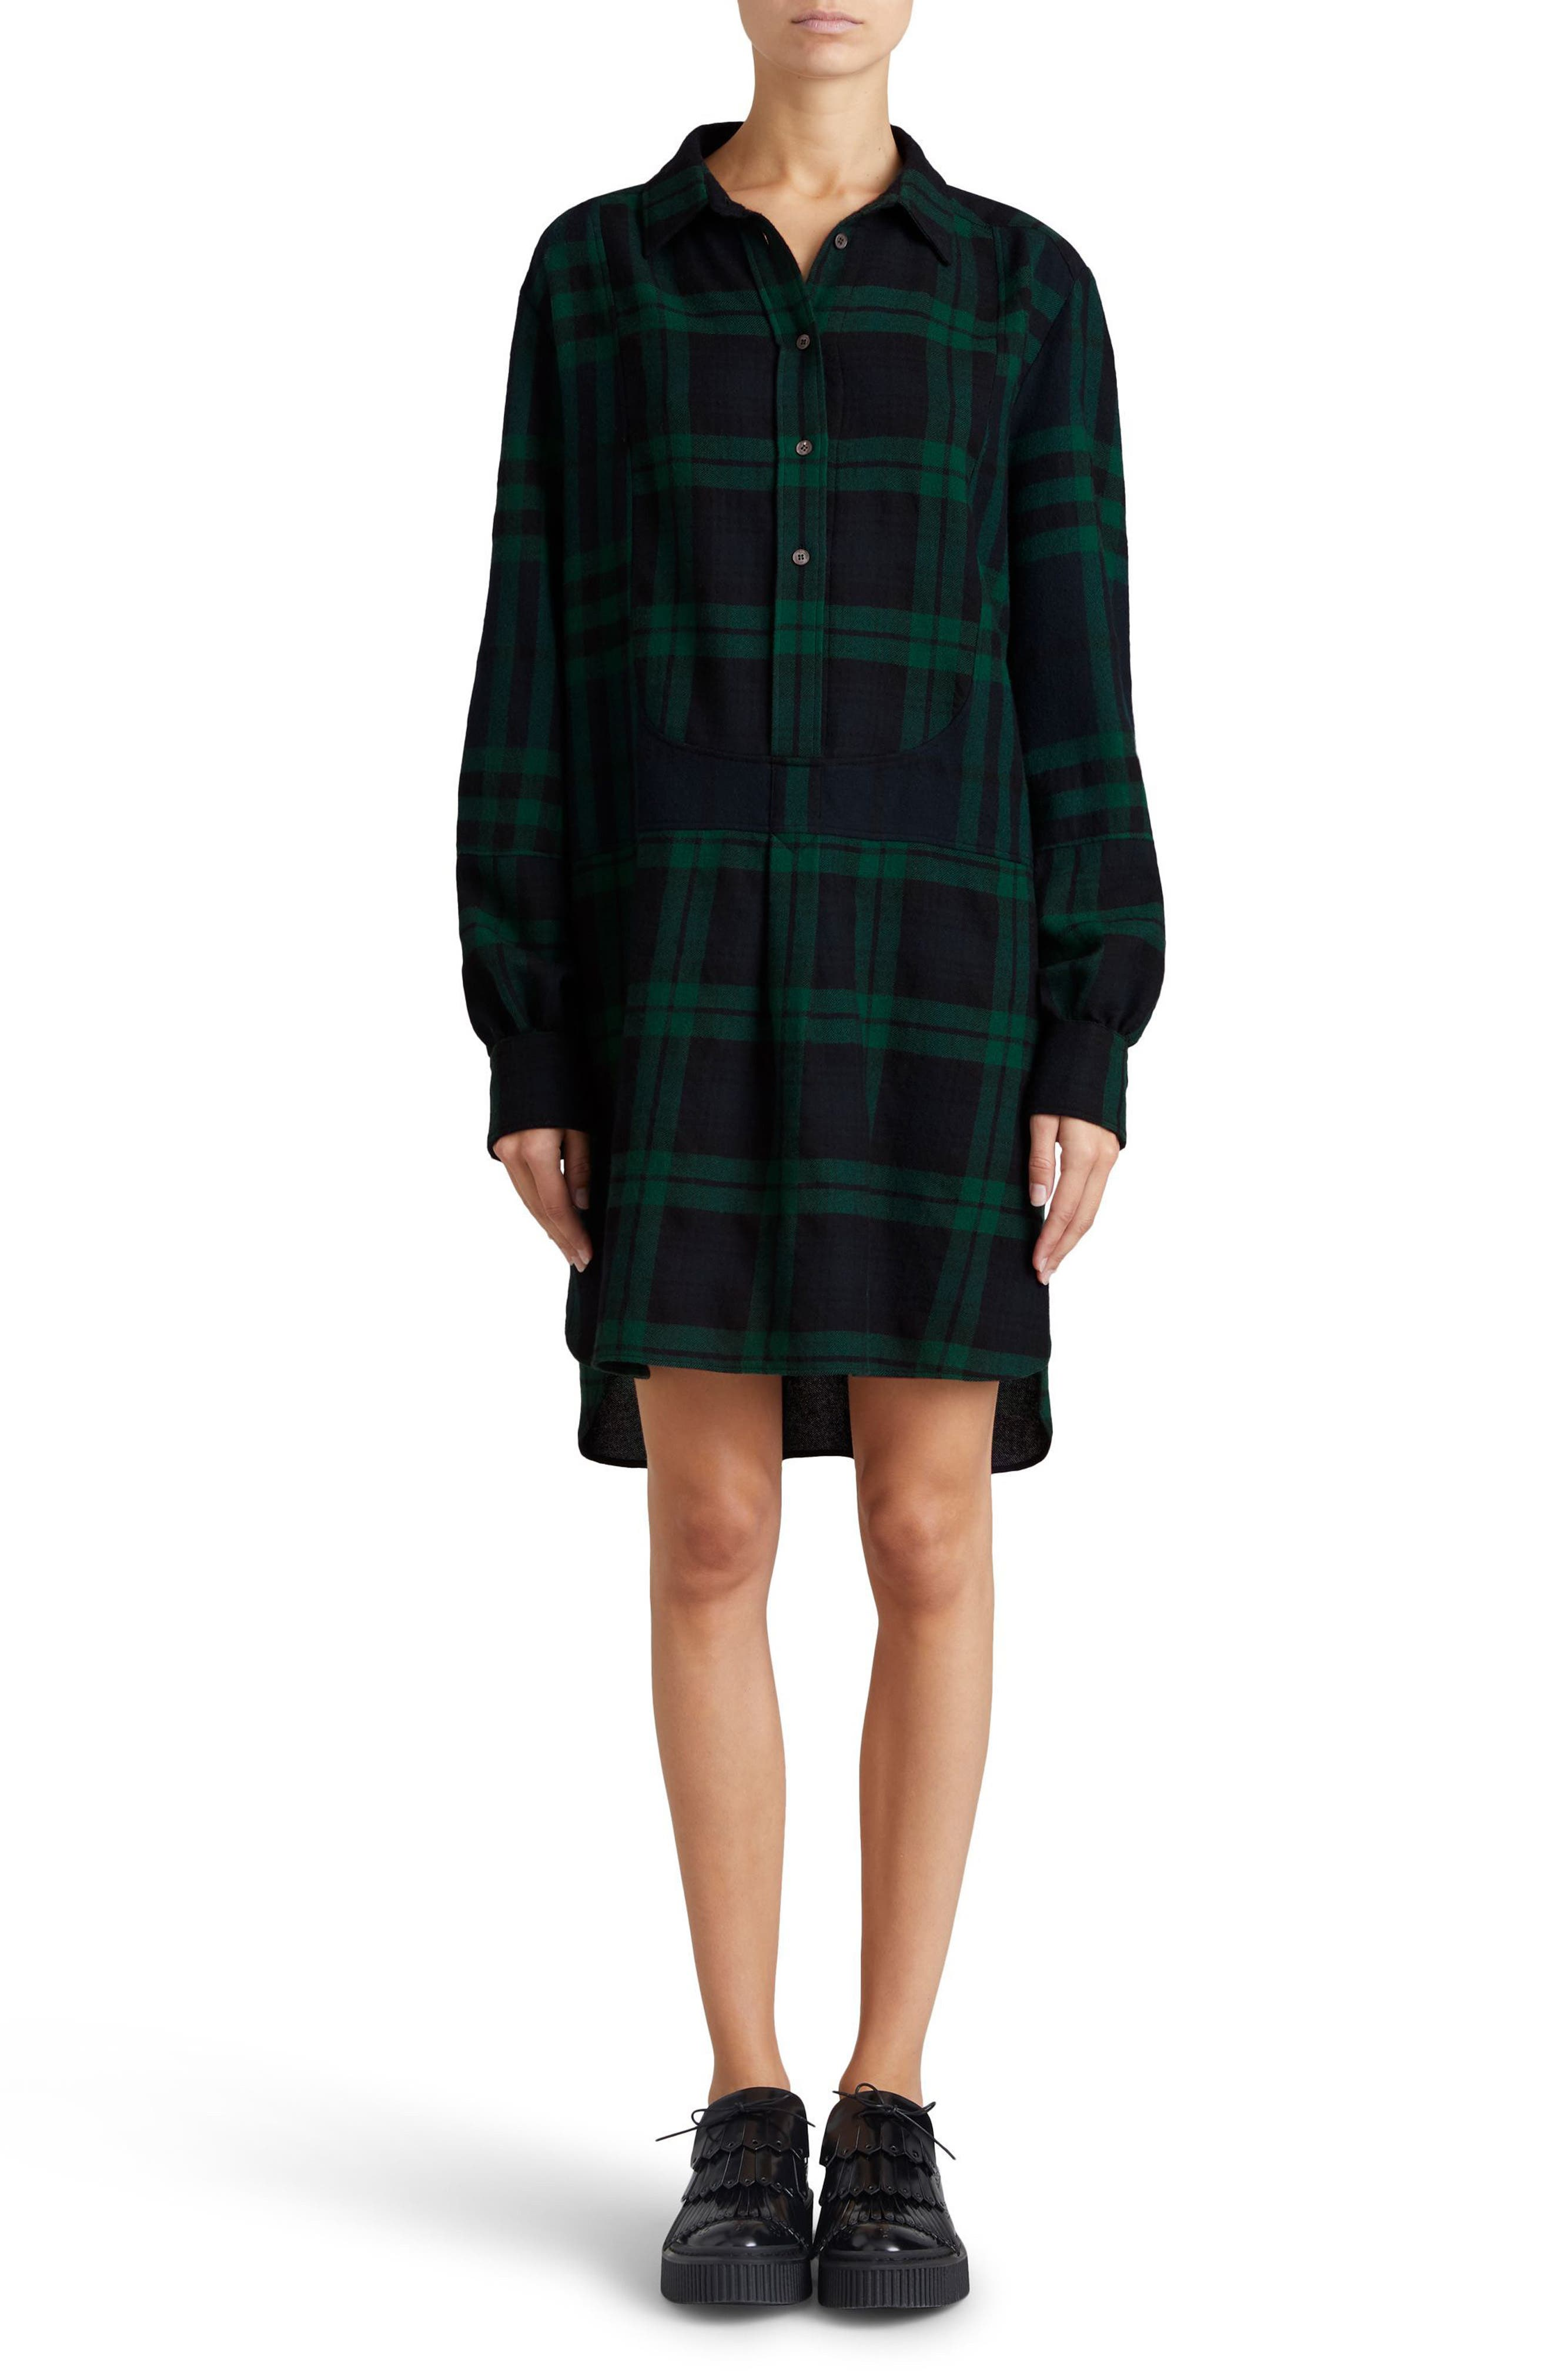 BURBERRY Kylie Check Wool Shirtdress, Main, color, 410